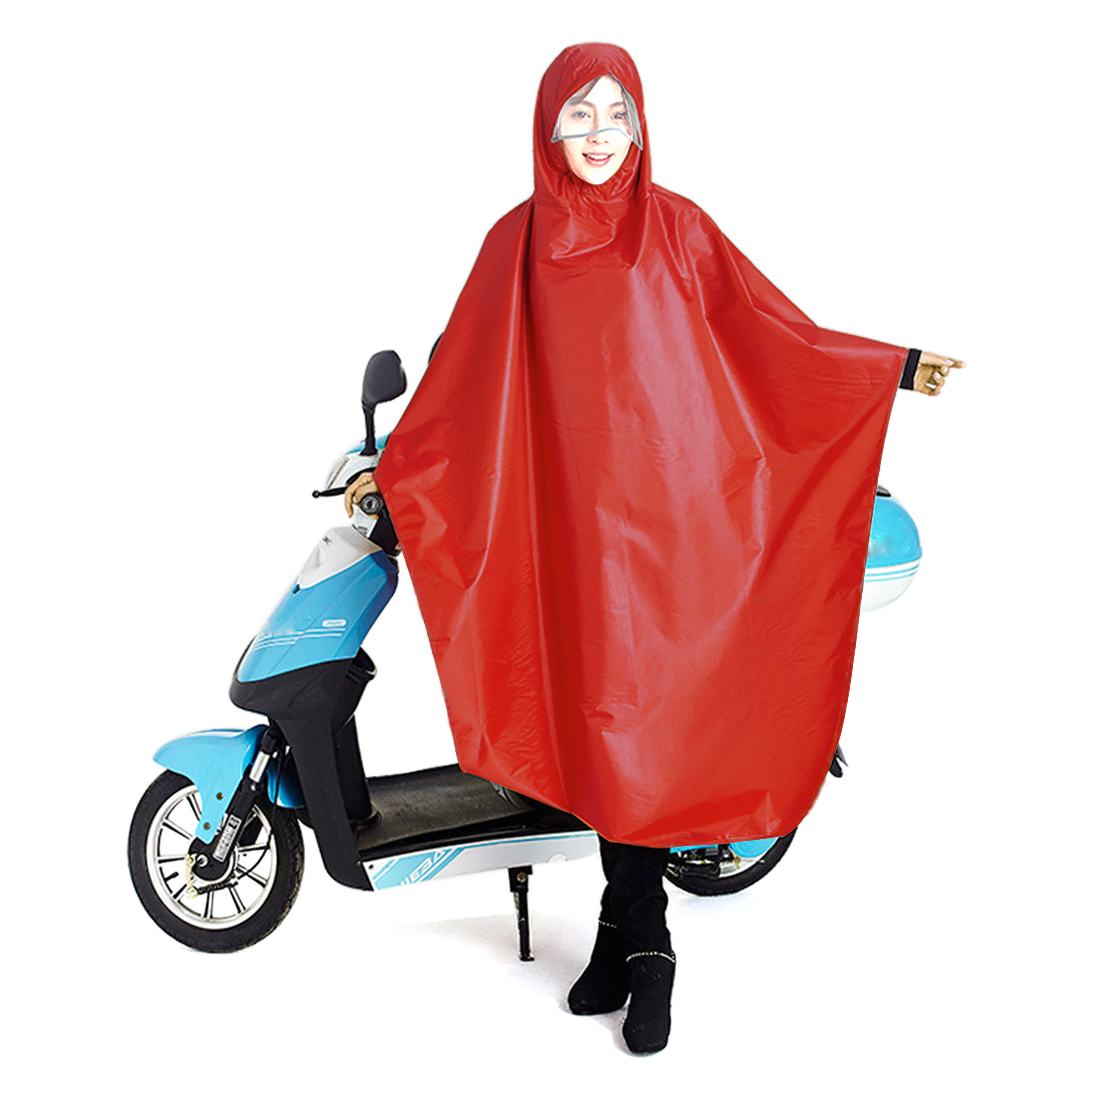 Click here to buy Red Adult Poncho Cycling Raincoat Bicycle Hooded Waterproof Rain Coat Cover by Unique-Bargains.